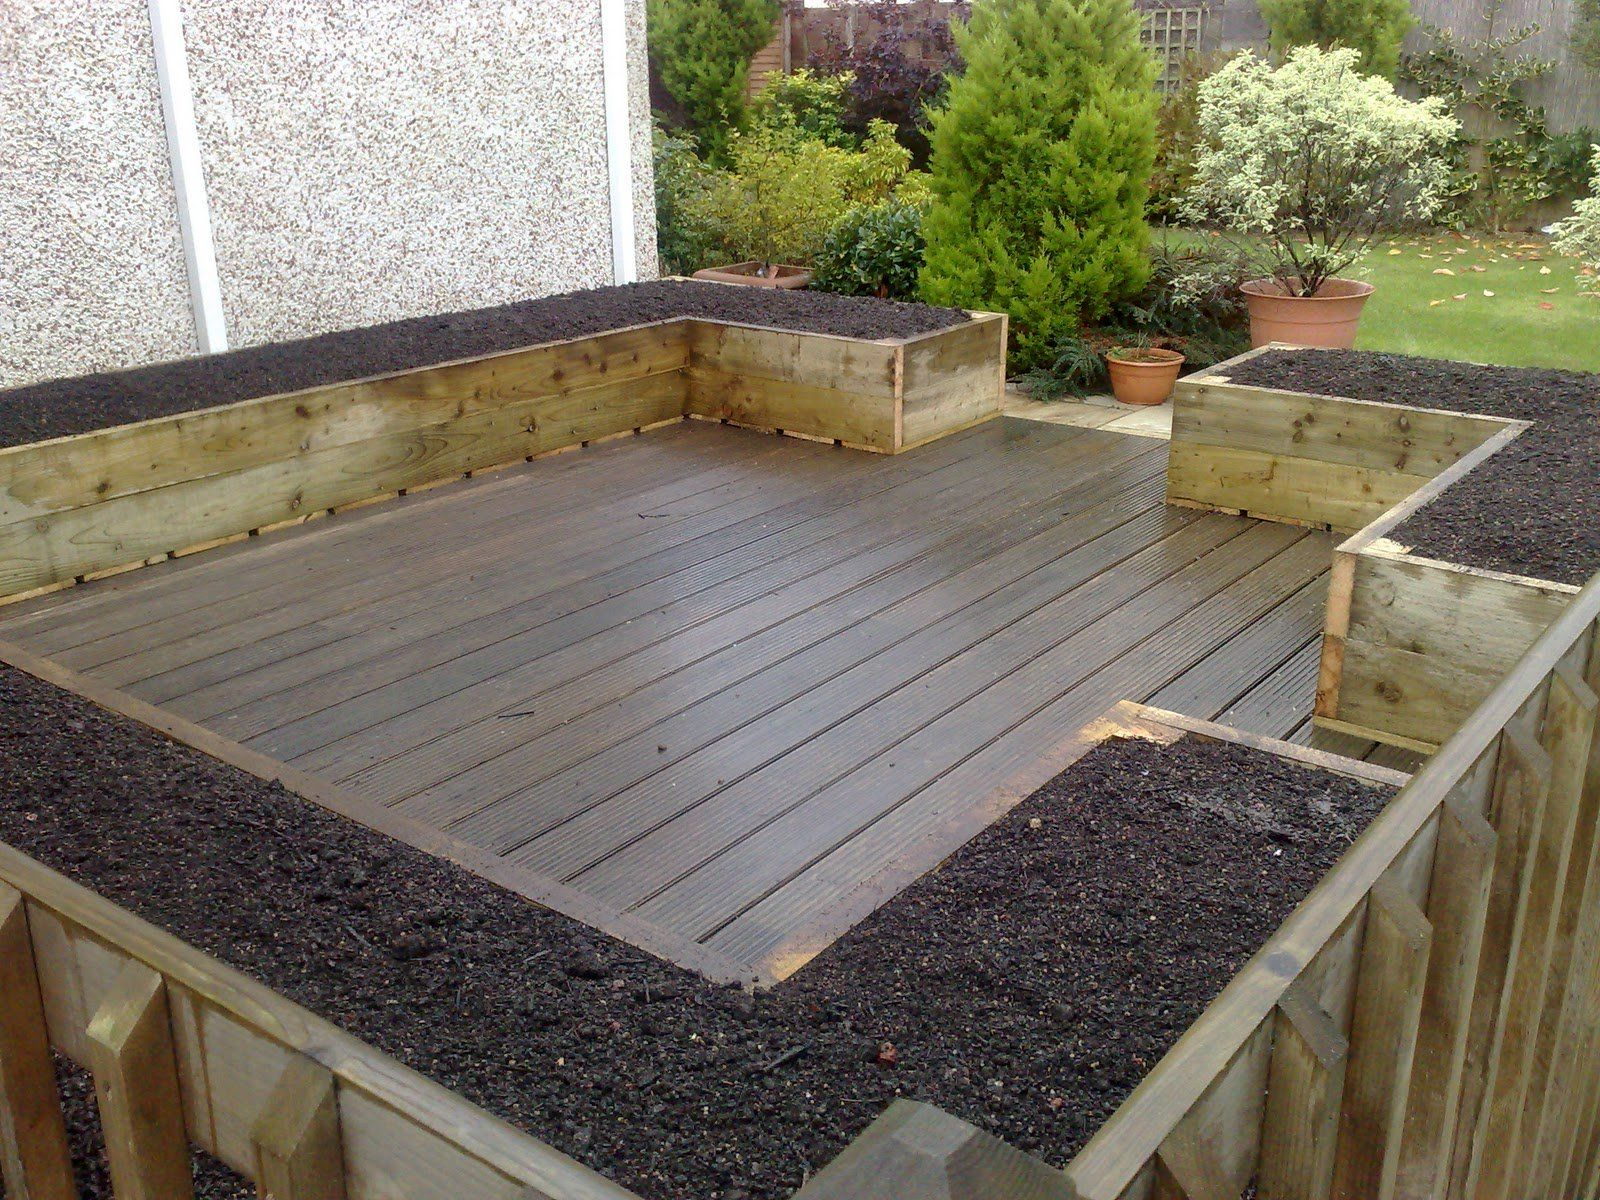 garden and patio deck and patio with hardwood floor tiles and soil mix for raised raised vegetable gardensraised bed - Raised Bed Vegetable Garden Design